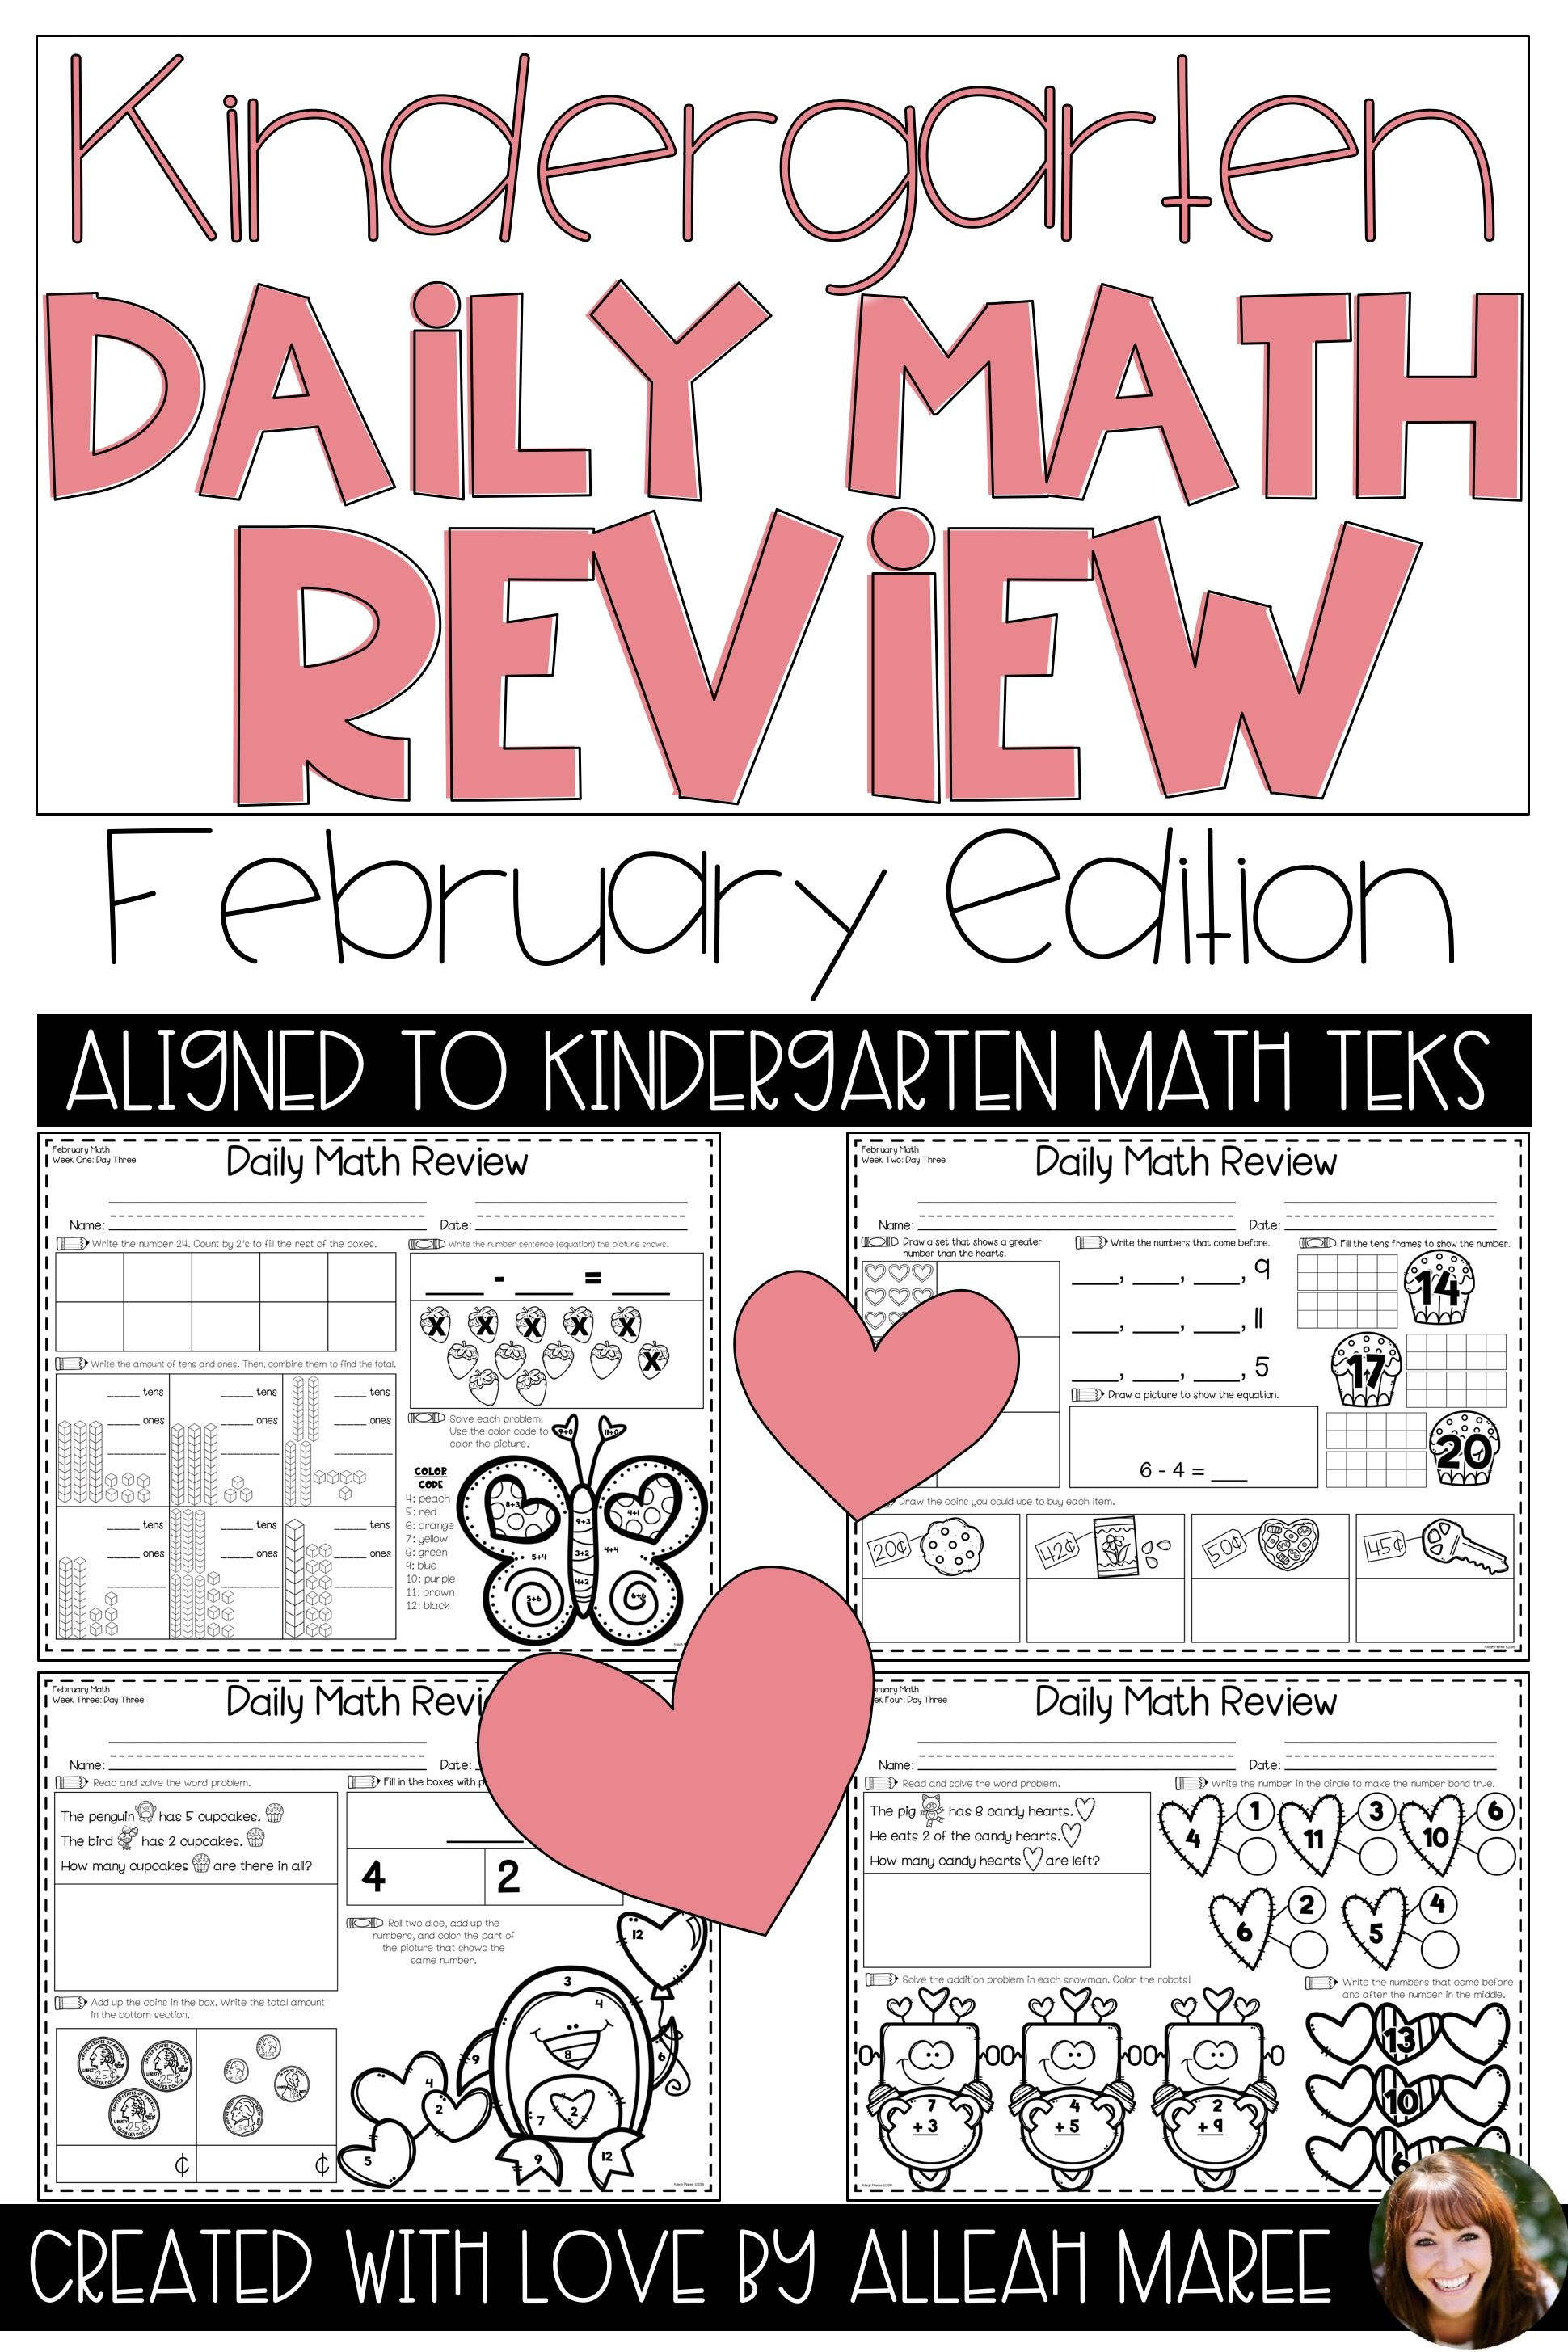 Love Is In The Air For February Get Your Kindergarteners Reviewing Their Math Skills With These Engaging No Prep Kindergarten Math Activities Daily Math Math [ 2910 x 1940 Pixel ]